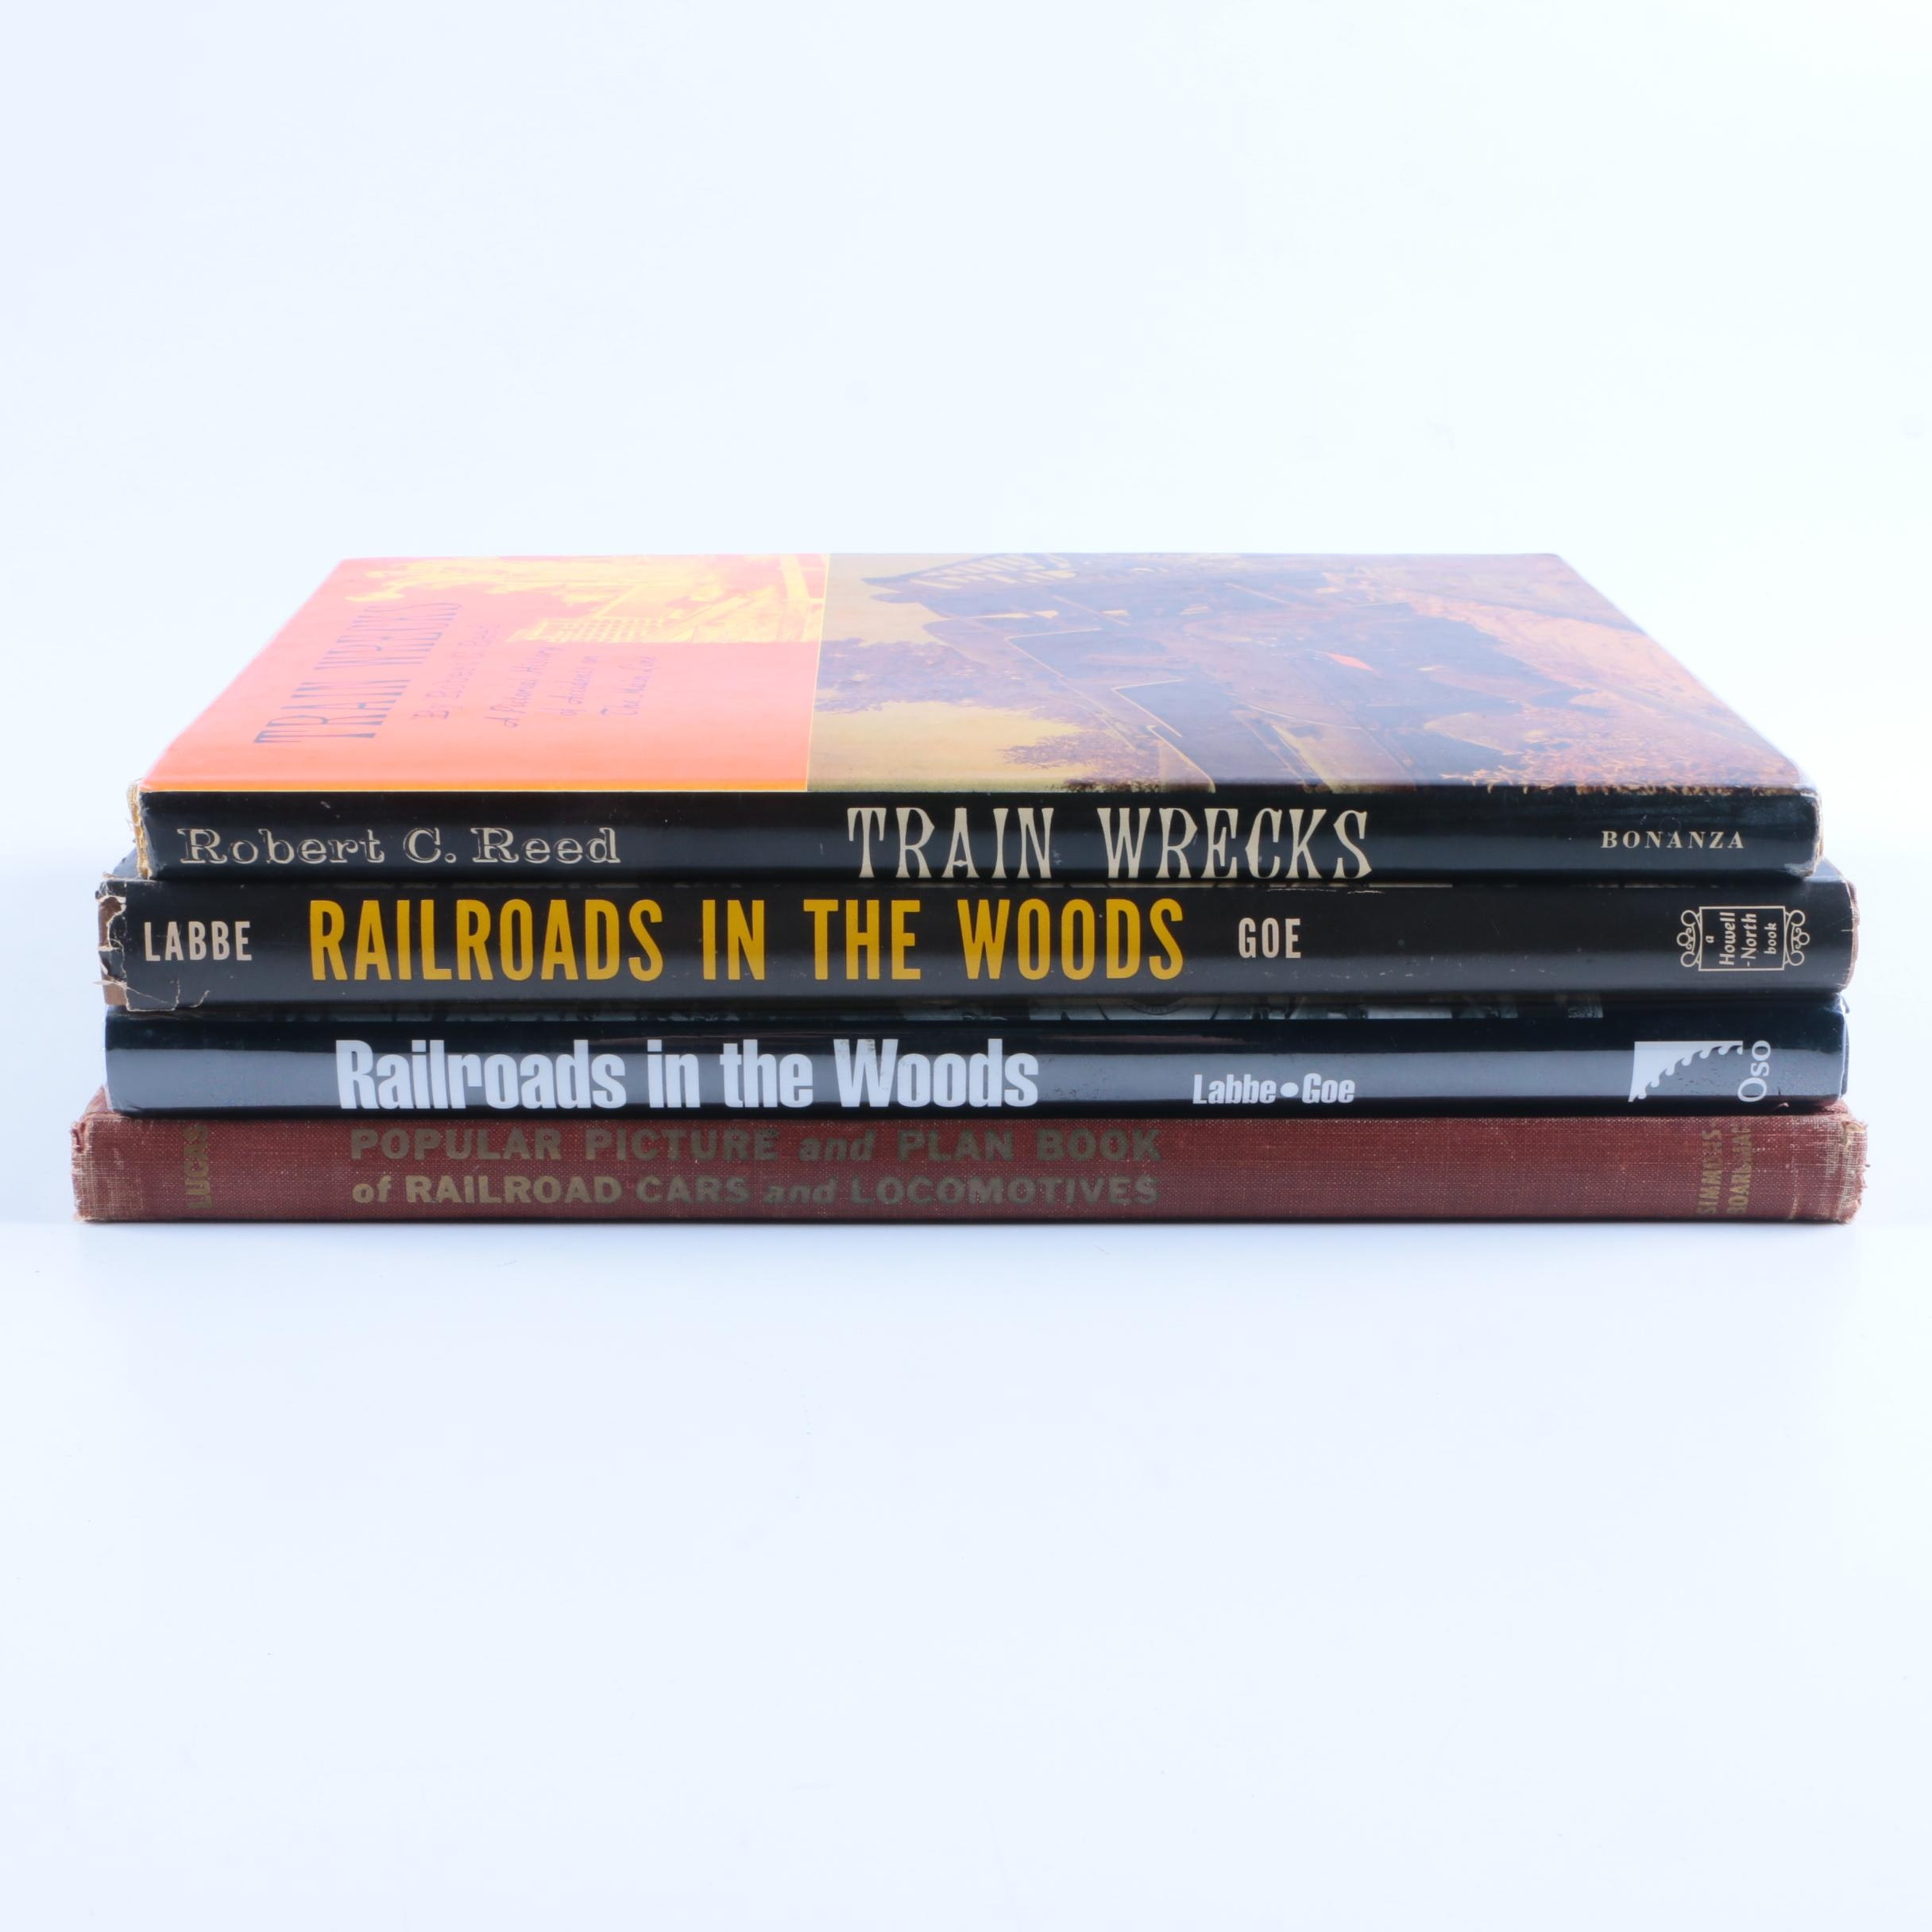 """Assorted Hardcover Books on Trains including """"Train Wrecks"""""""